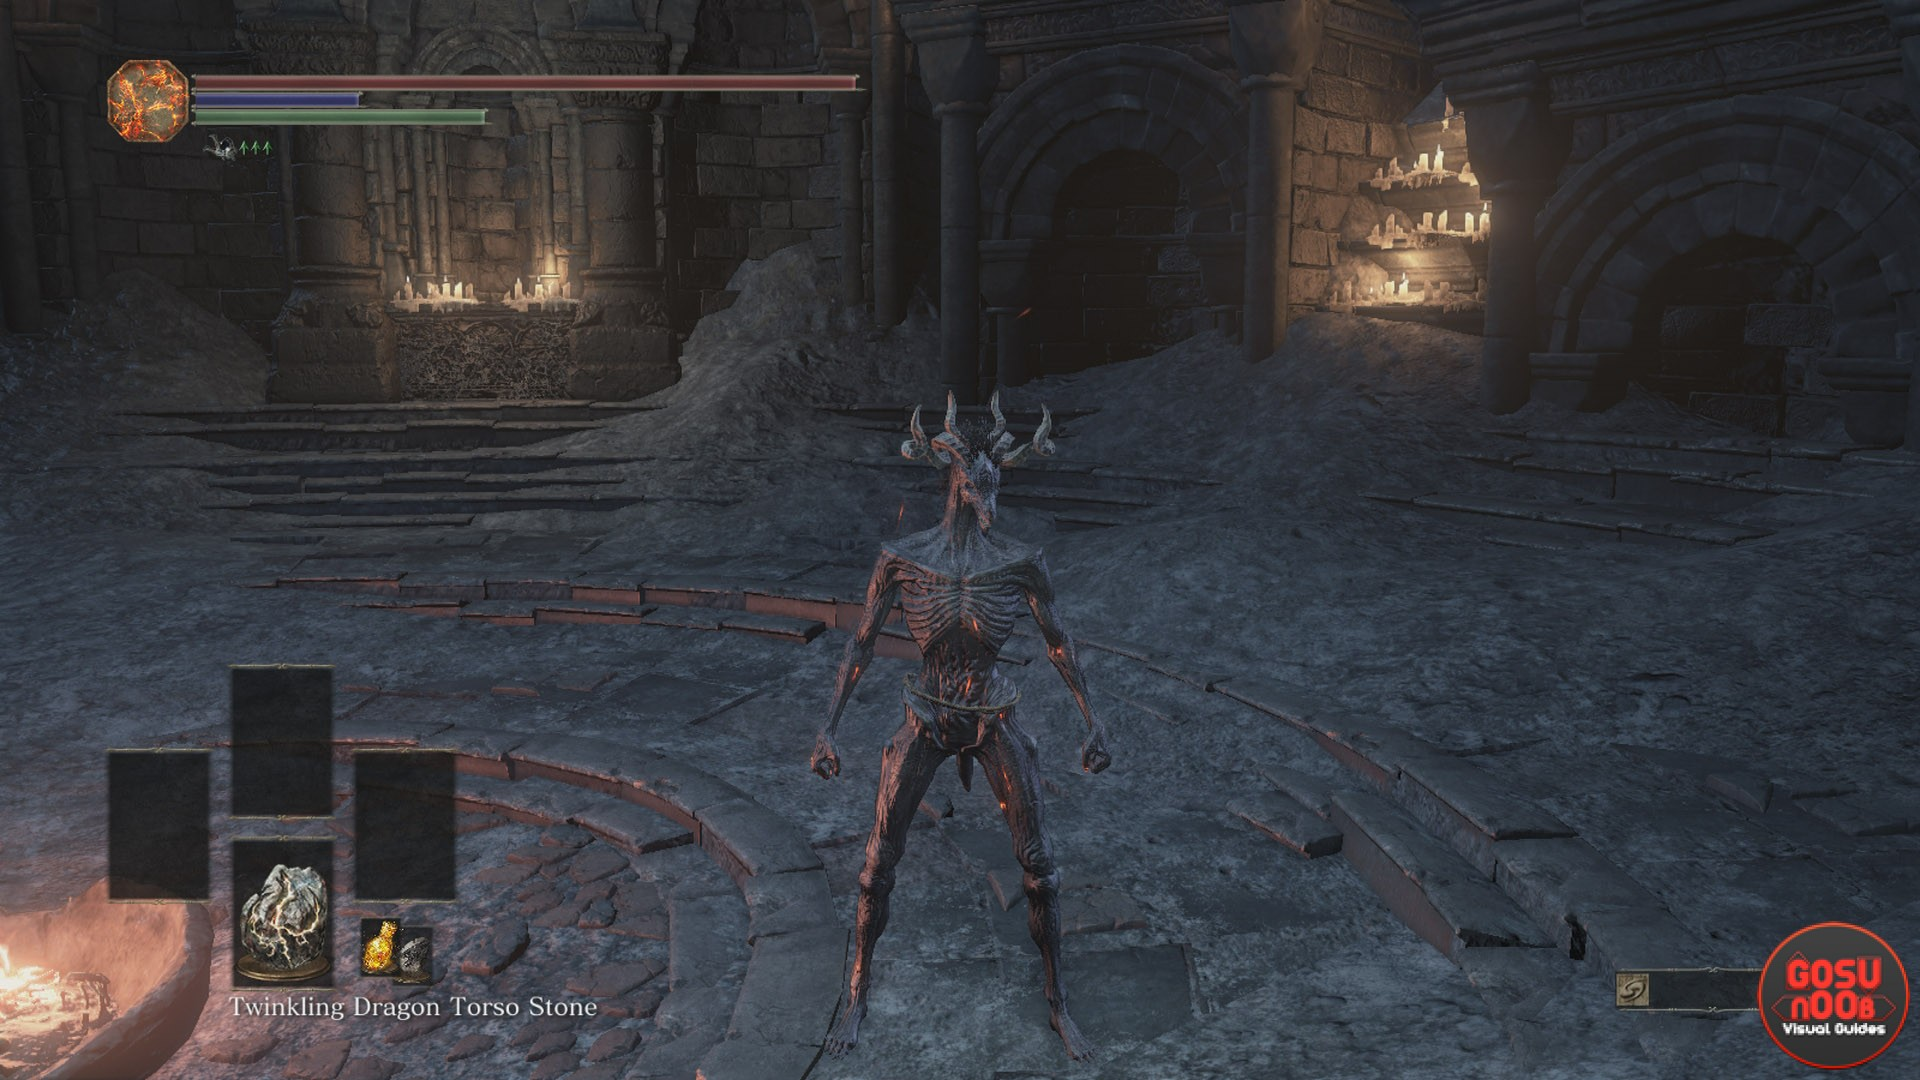 How to Become a Dragon in Dark Souls 3 - Gosu Noob